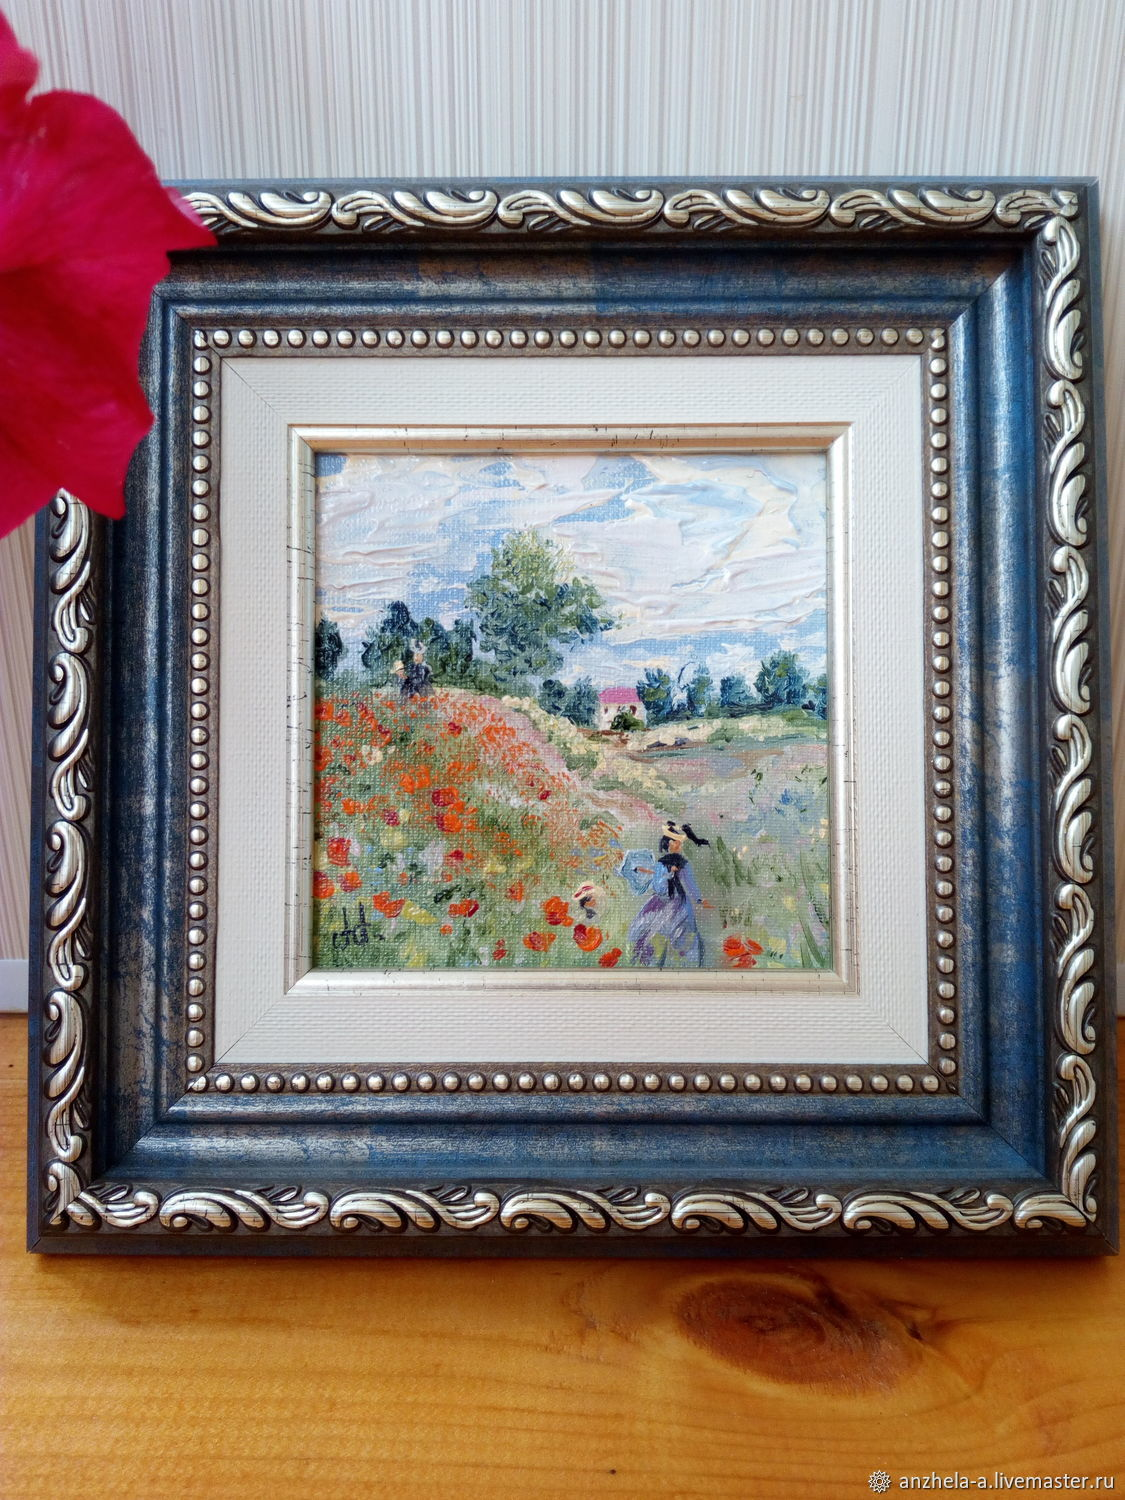 Painting Poppies oil on canvas miniature, Pictures, Moscow,  Фото №1